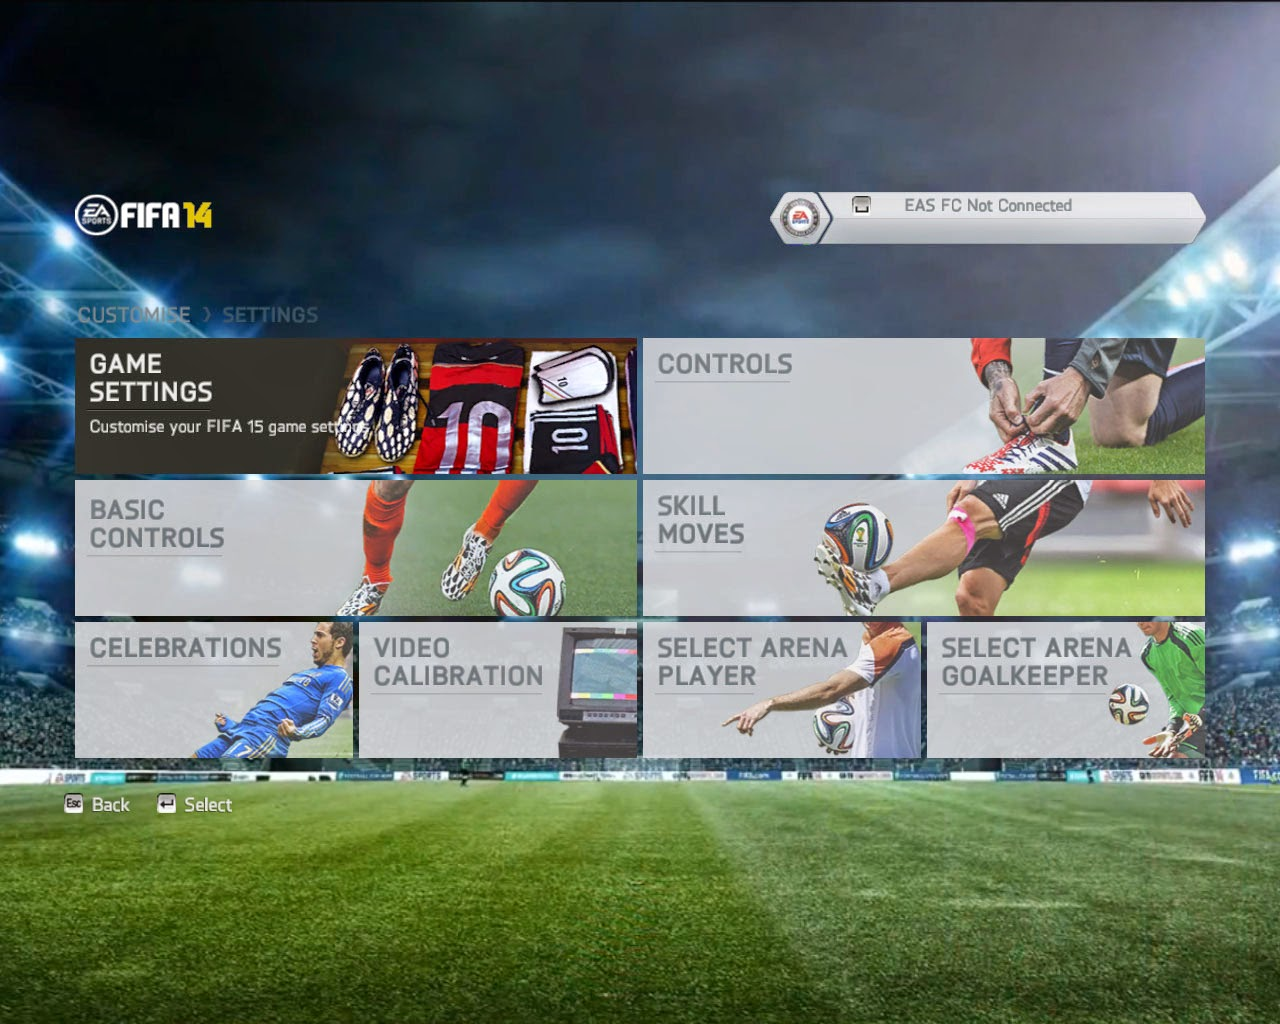 Fifa 14 patch with 15 updates